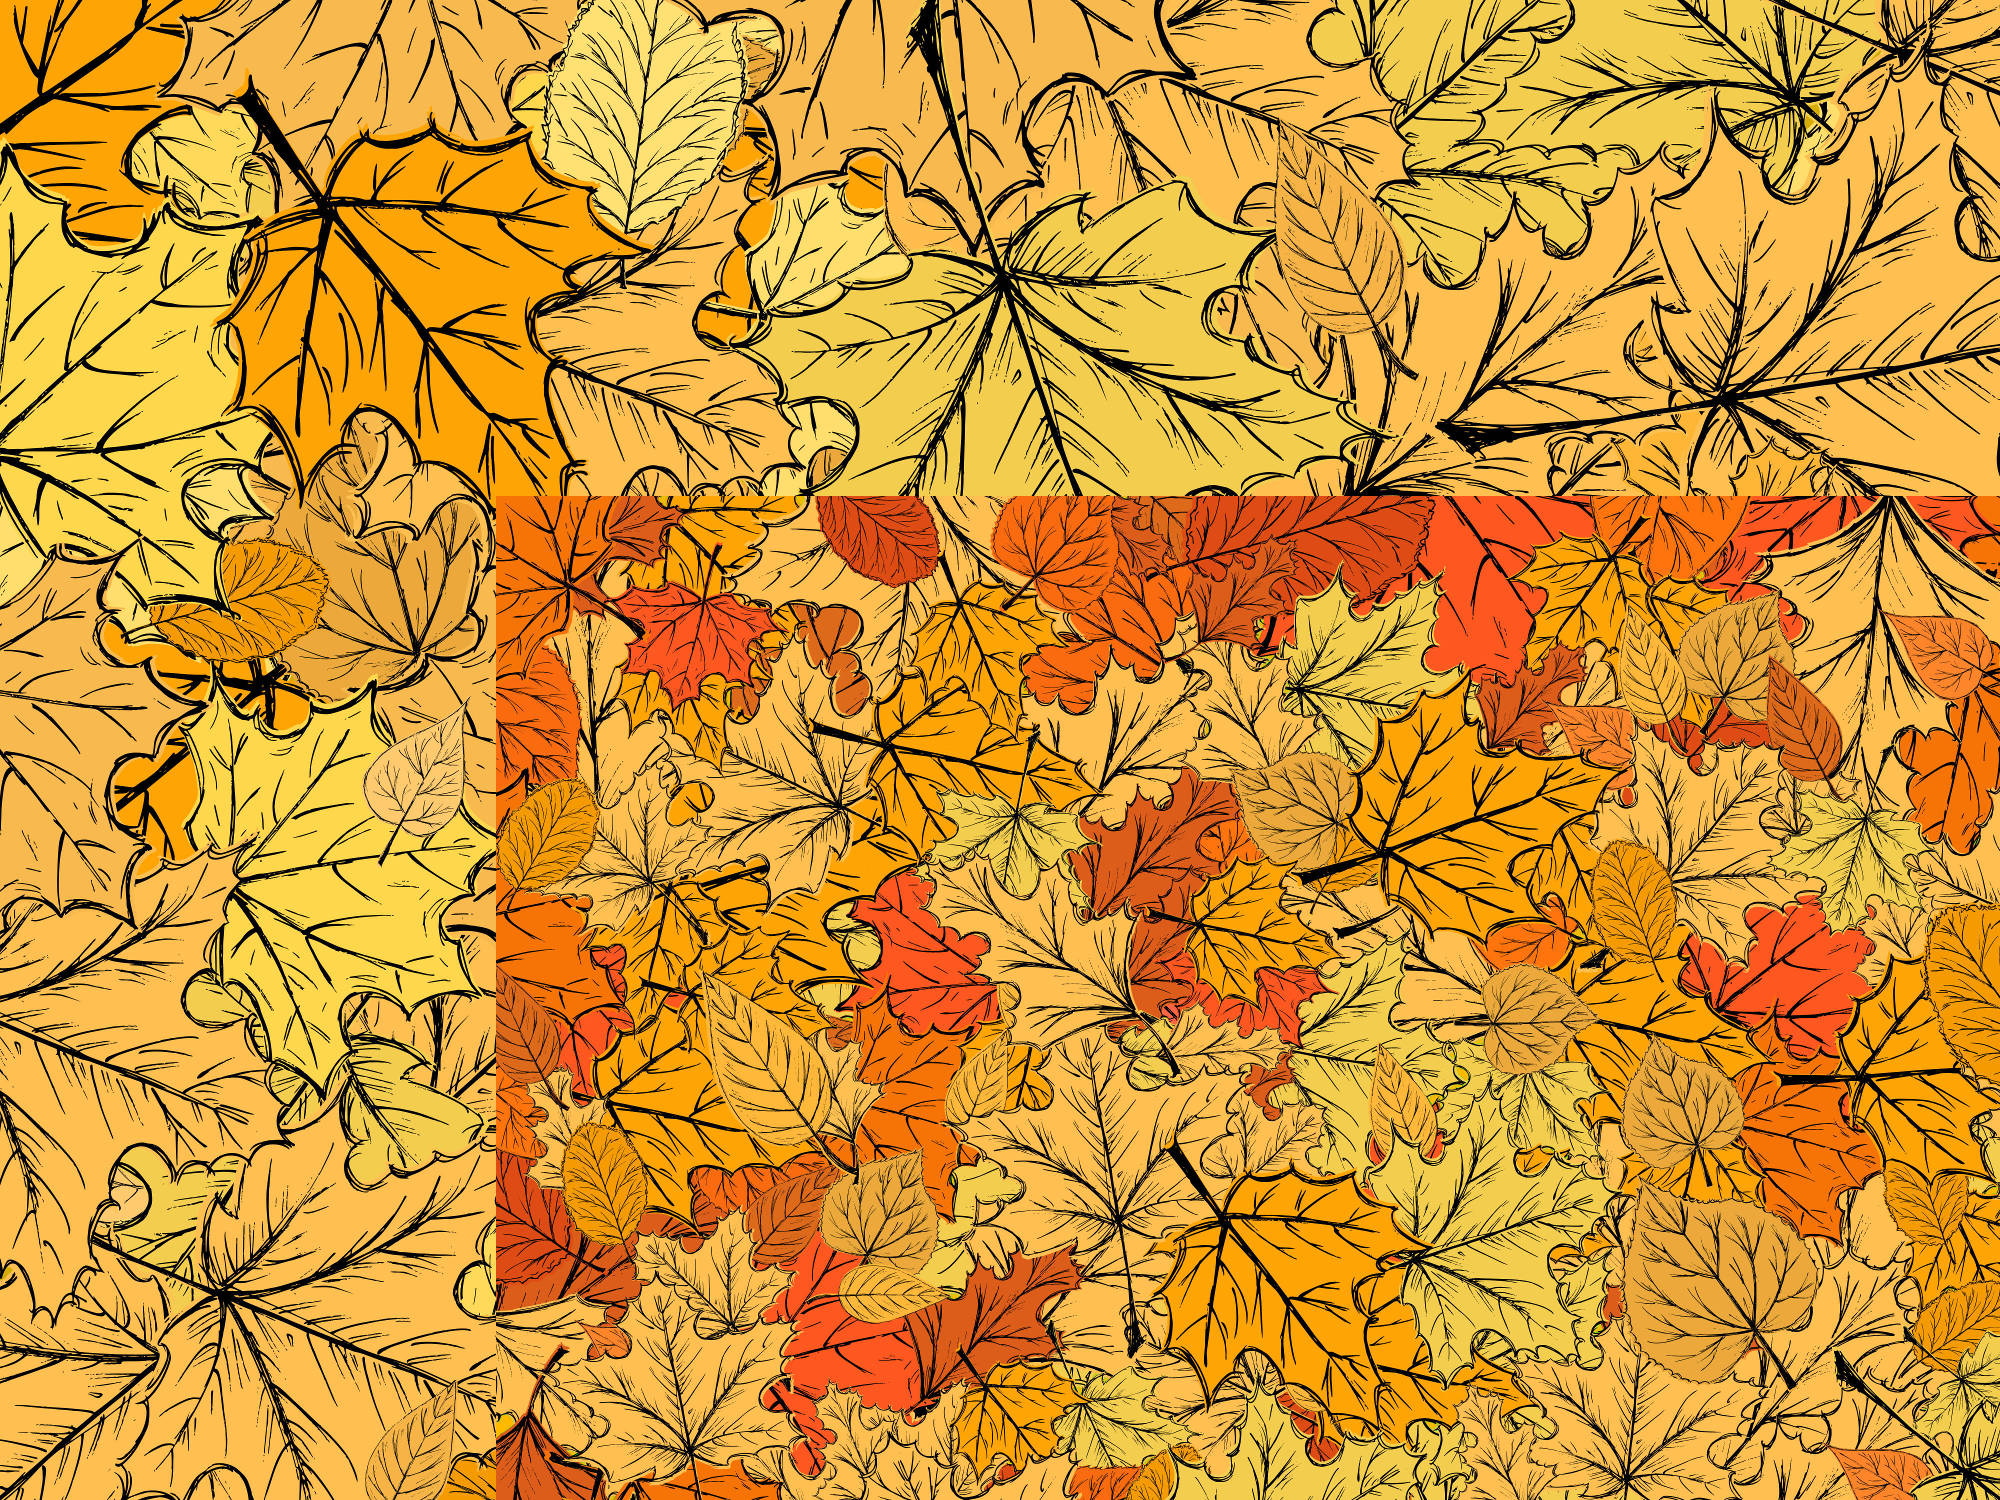 autumn-leaves-background-cover.jpg